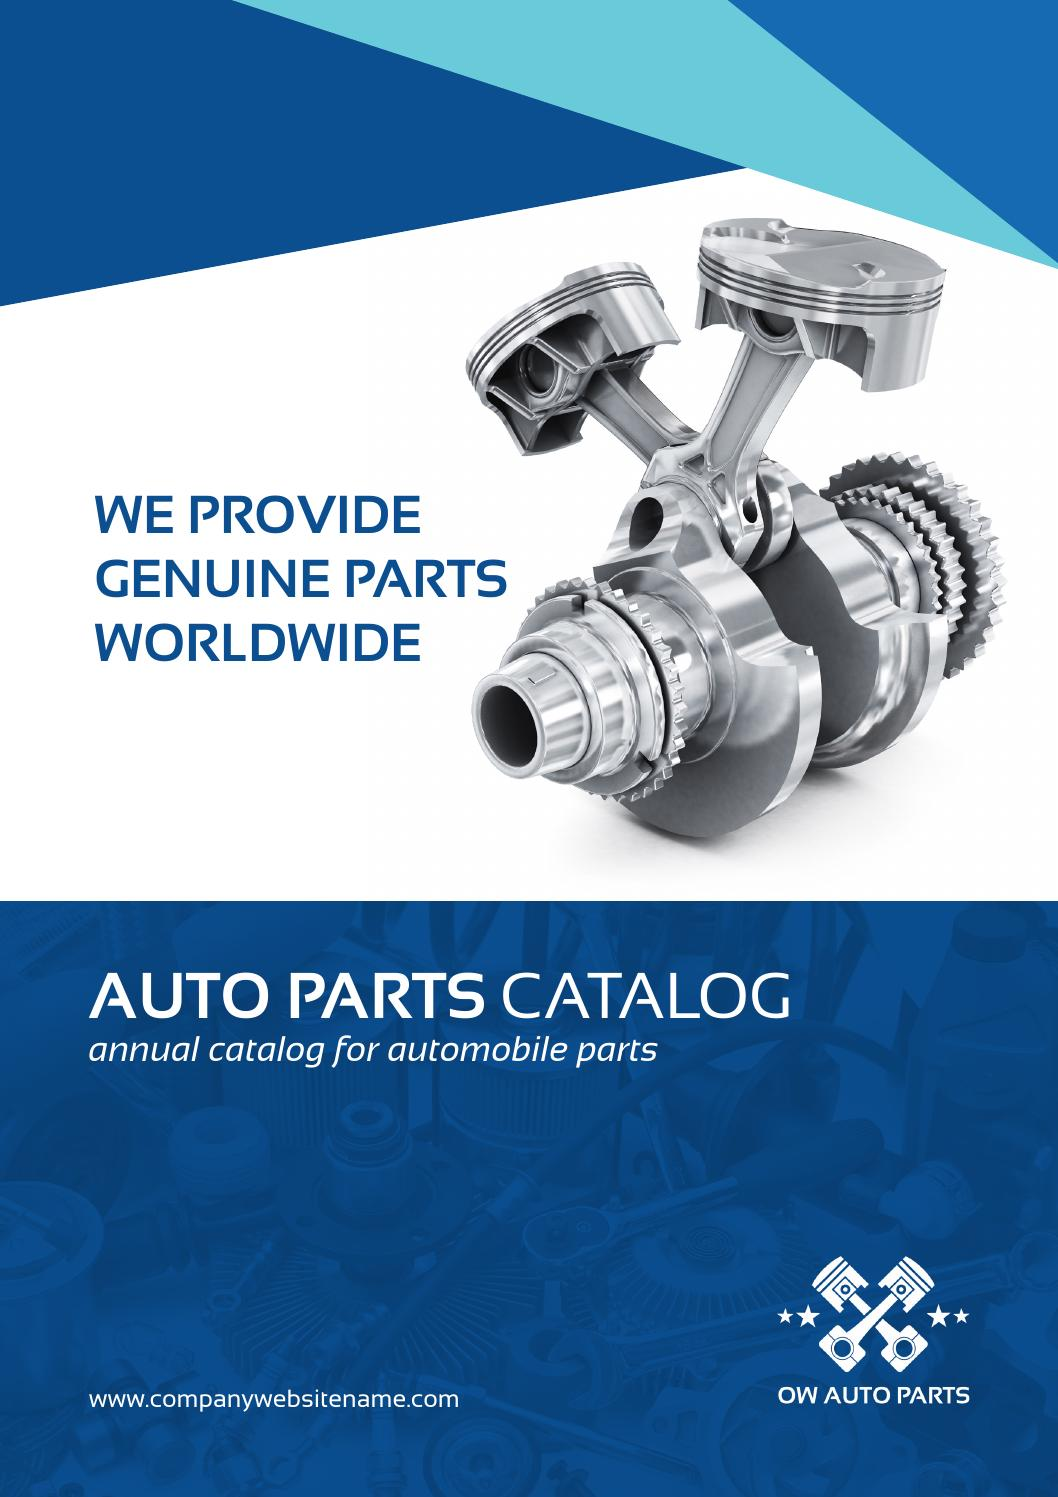 auto parts catalog brochure template by ow pictures